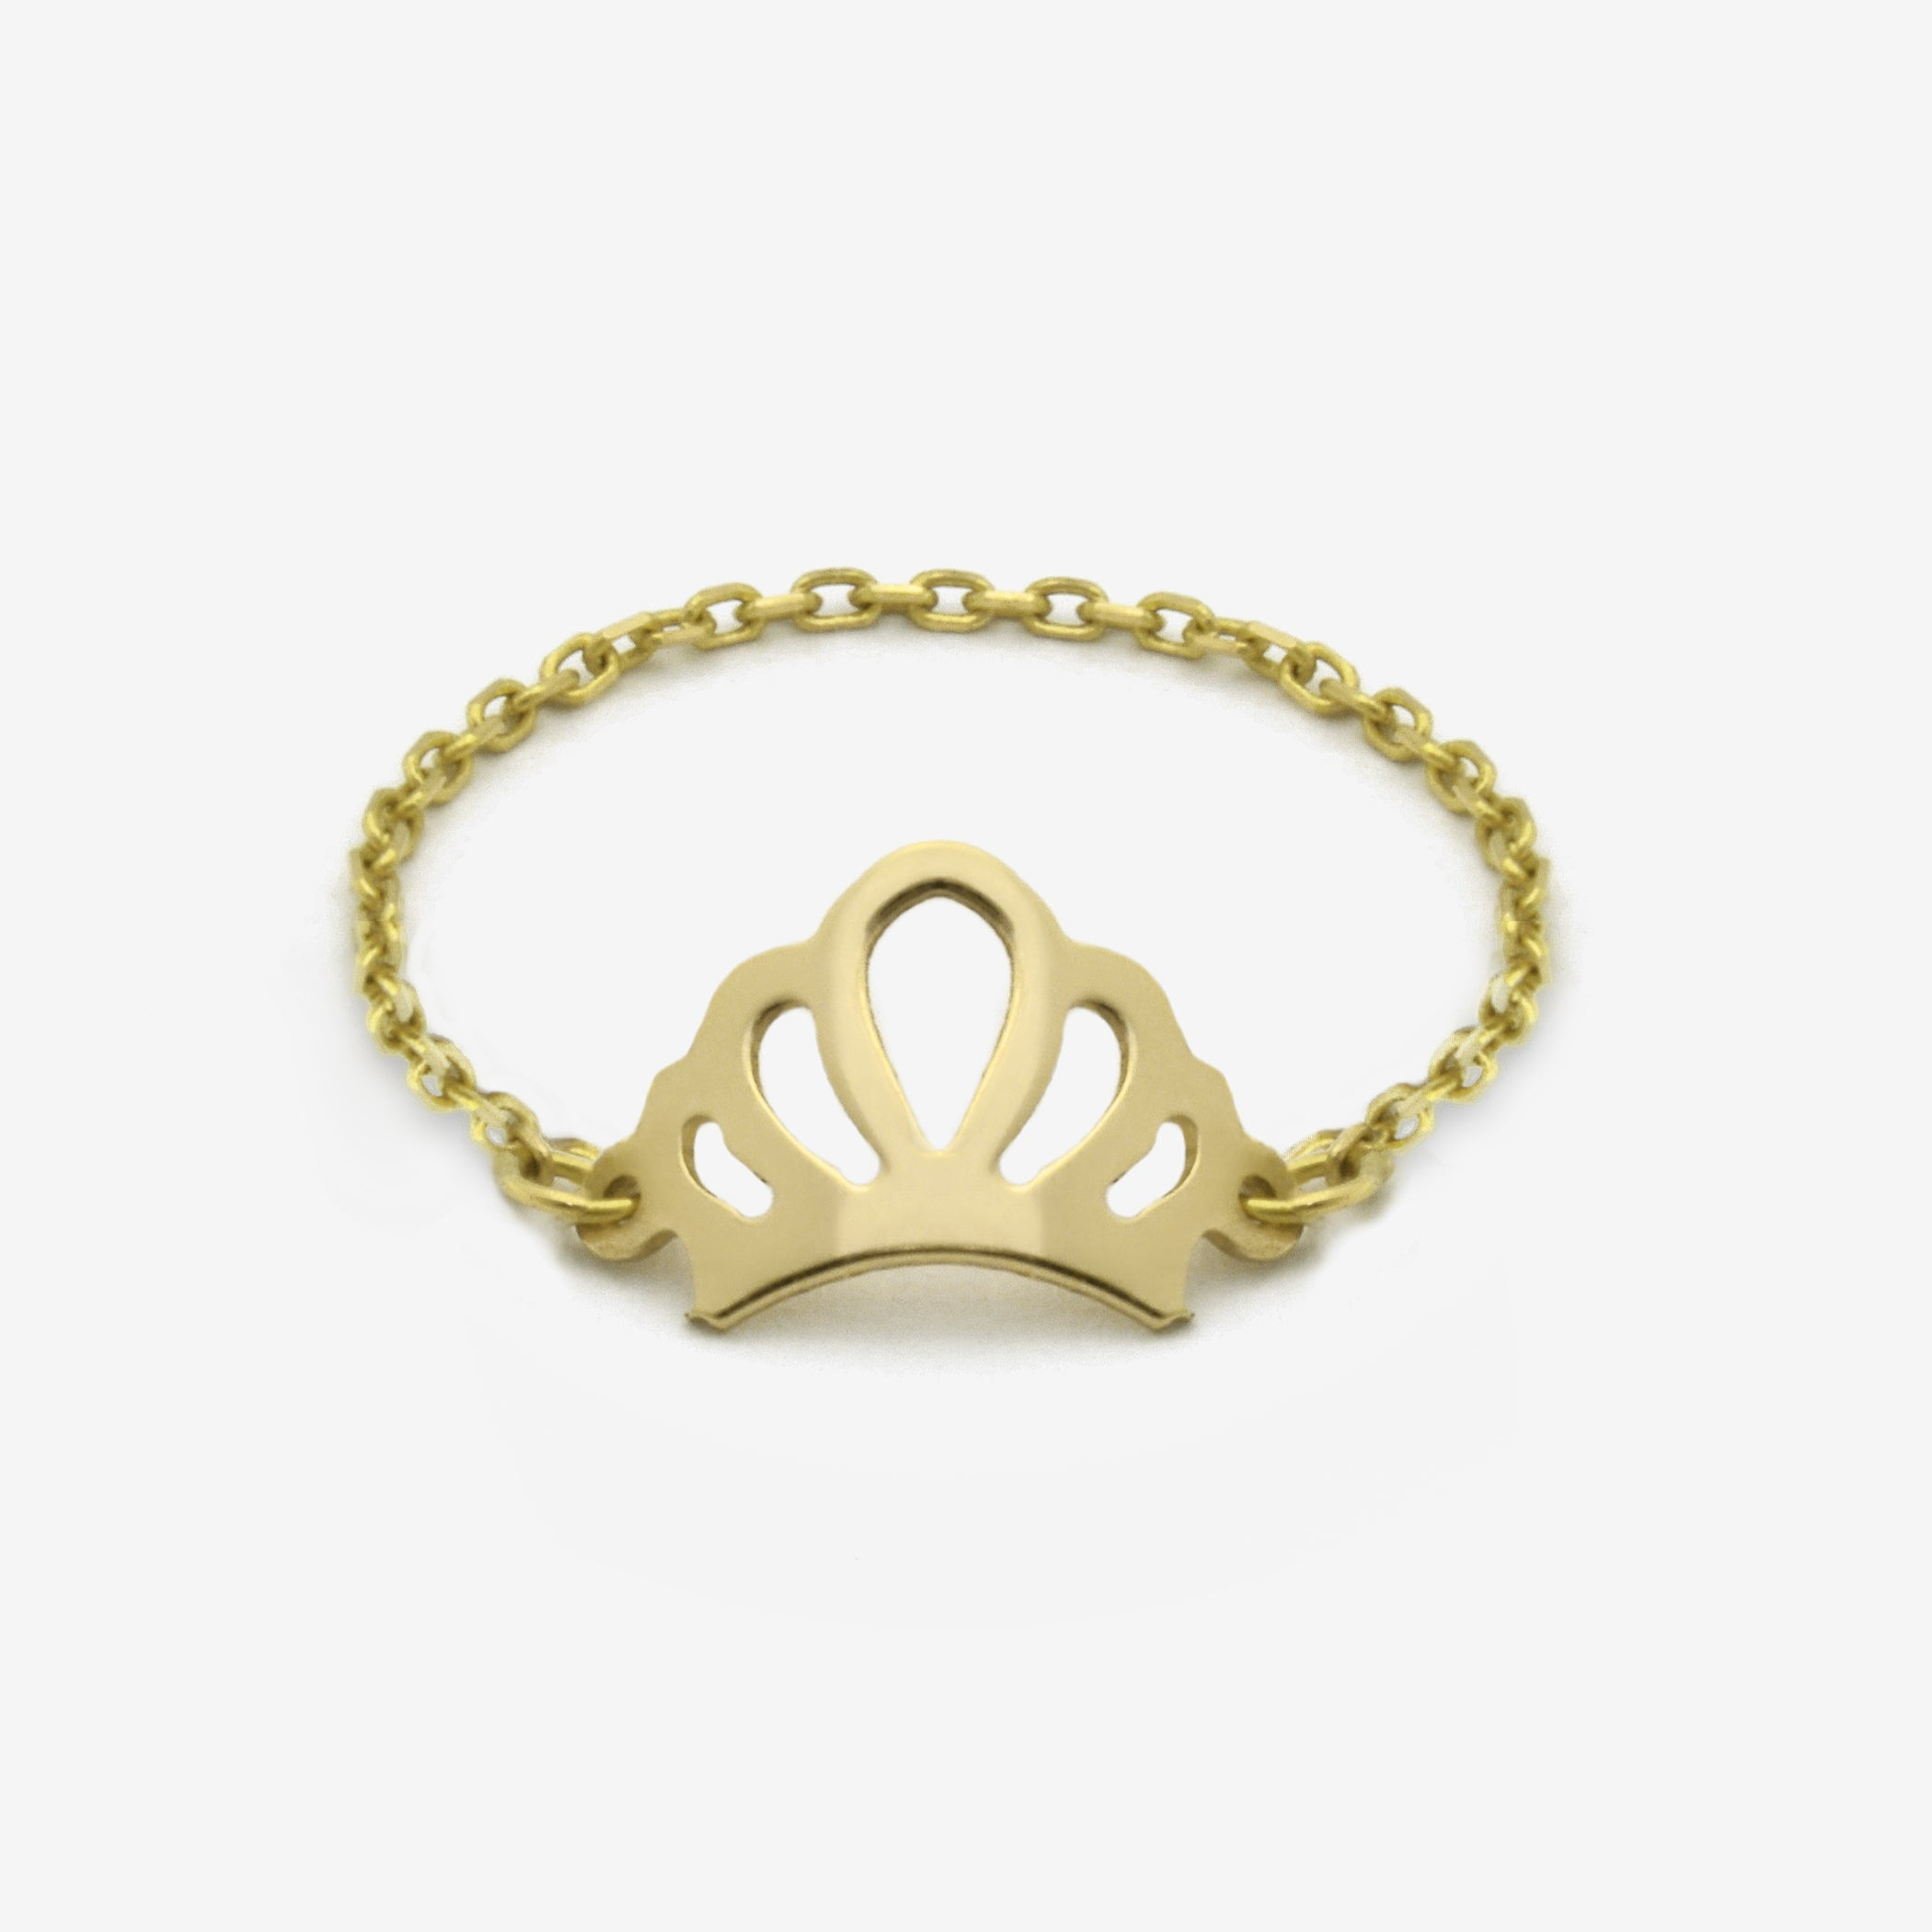 Tiara Catena Gold Ring - by Claurete Jewelry at Claurete.com